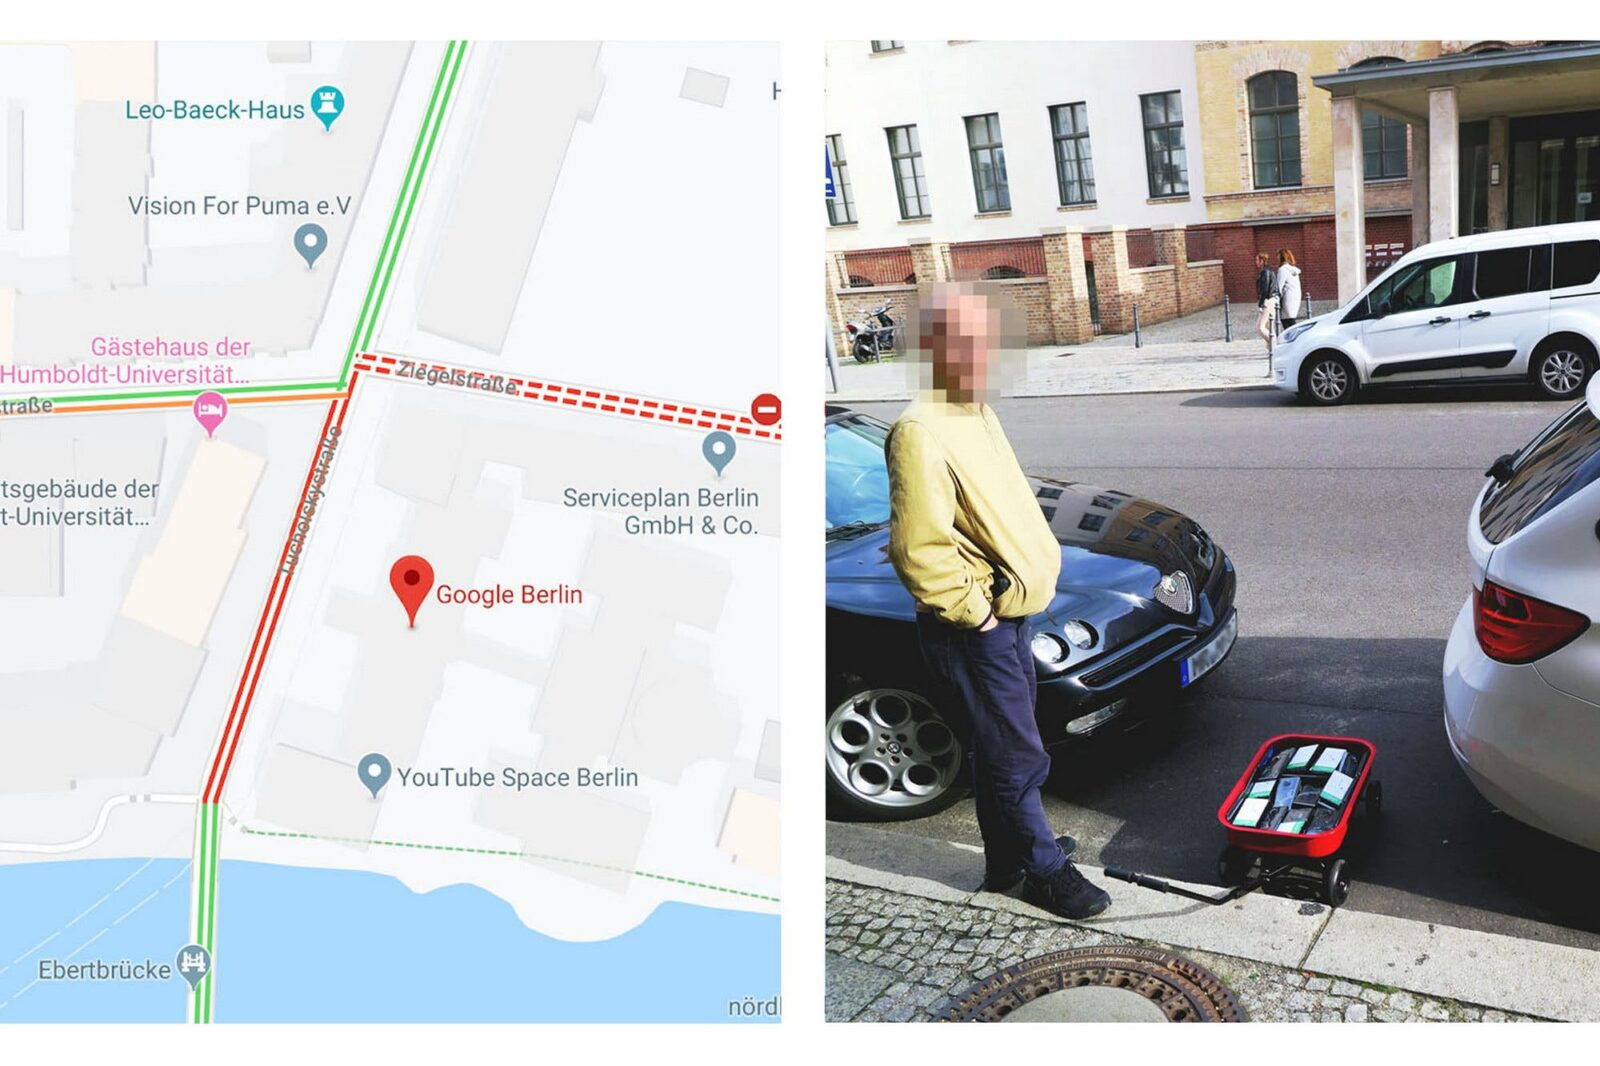 An artist with cart full of mobile phones hacked Google Maps and created fake traffic jams in Berlin